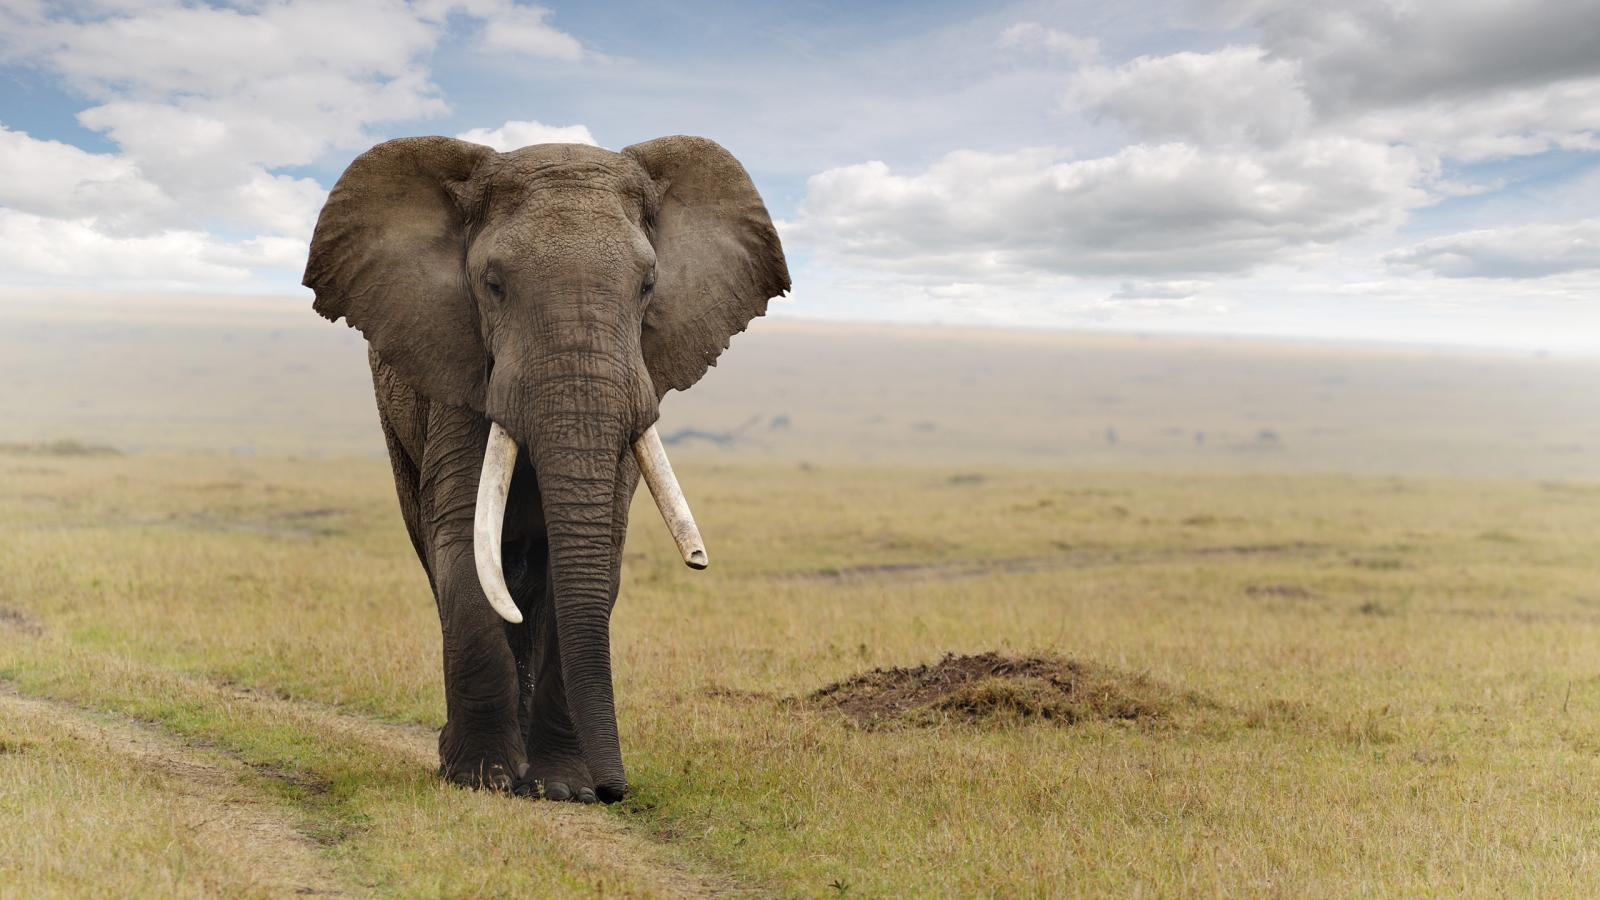 Cute Butterflies Hd Wallpapers 20 High Resolution Elephant Pictures No 5 Big African